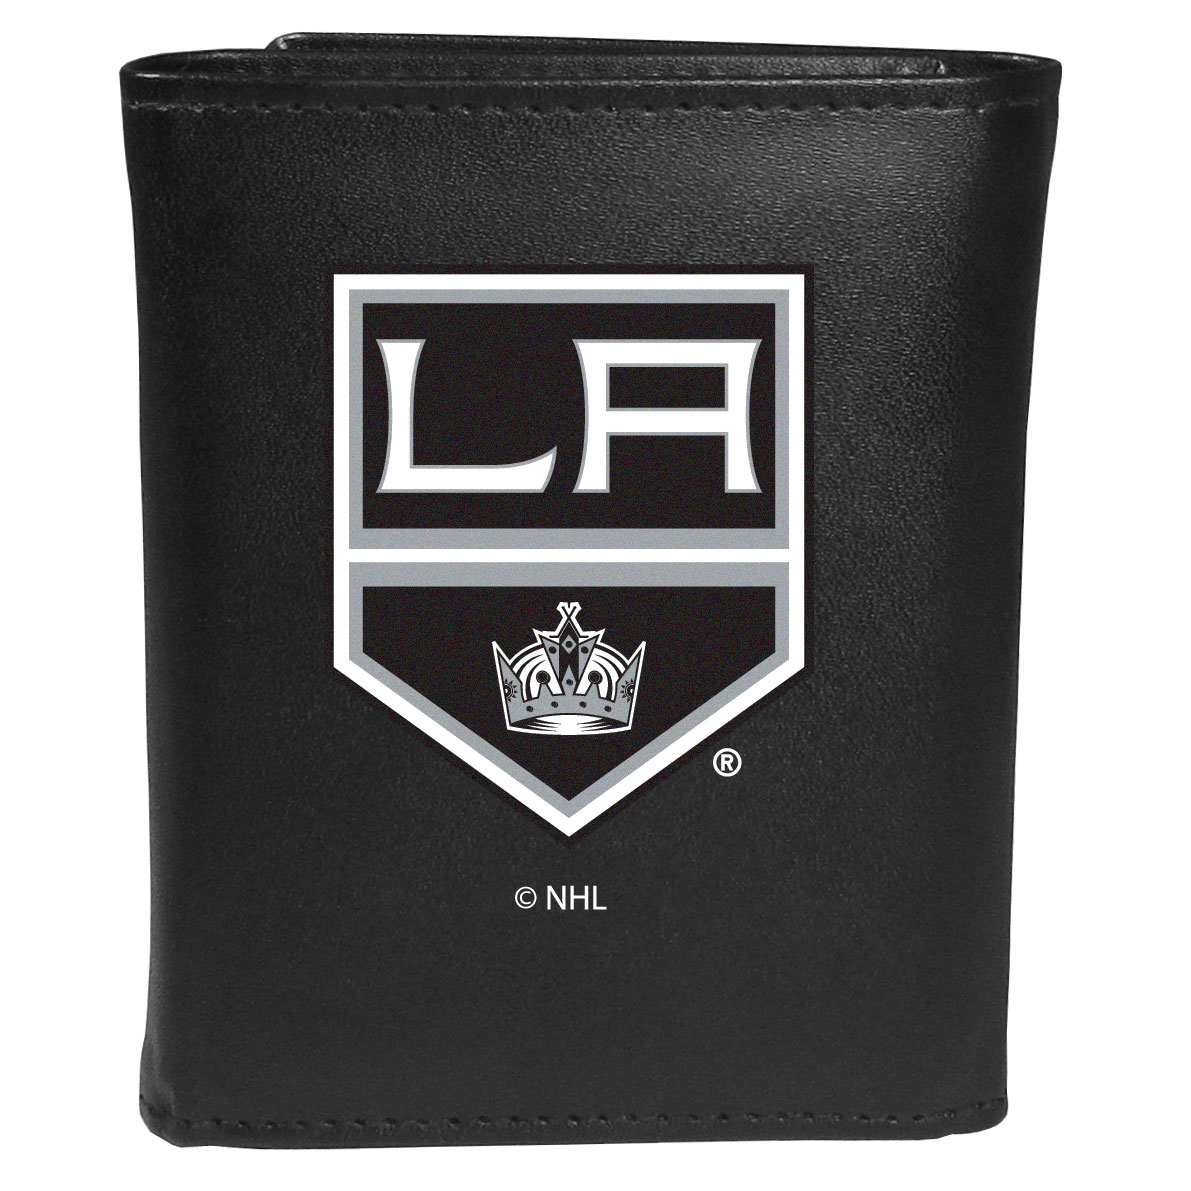 Los Angeles Kings® Leather Tri-fold Wallet, Large Logo - Our classic fine leather tri-fold wallet is meticulously crafted with genuine leather that will age beautifully so you will have a quality wallet for years to come. This is fan apparel at its finest. The wallet is packed with organizational  features; lots of credit card slots, large billfold pocket, and a window ID slot. The front of the wallet features an extra large Los Angeles Kings® printed logo.